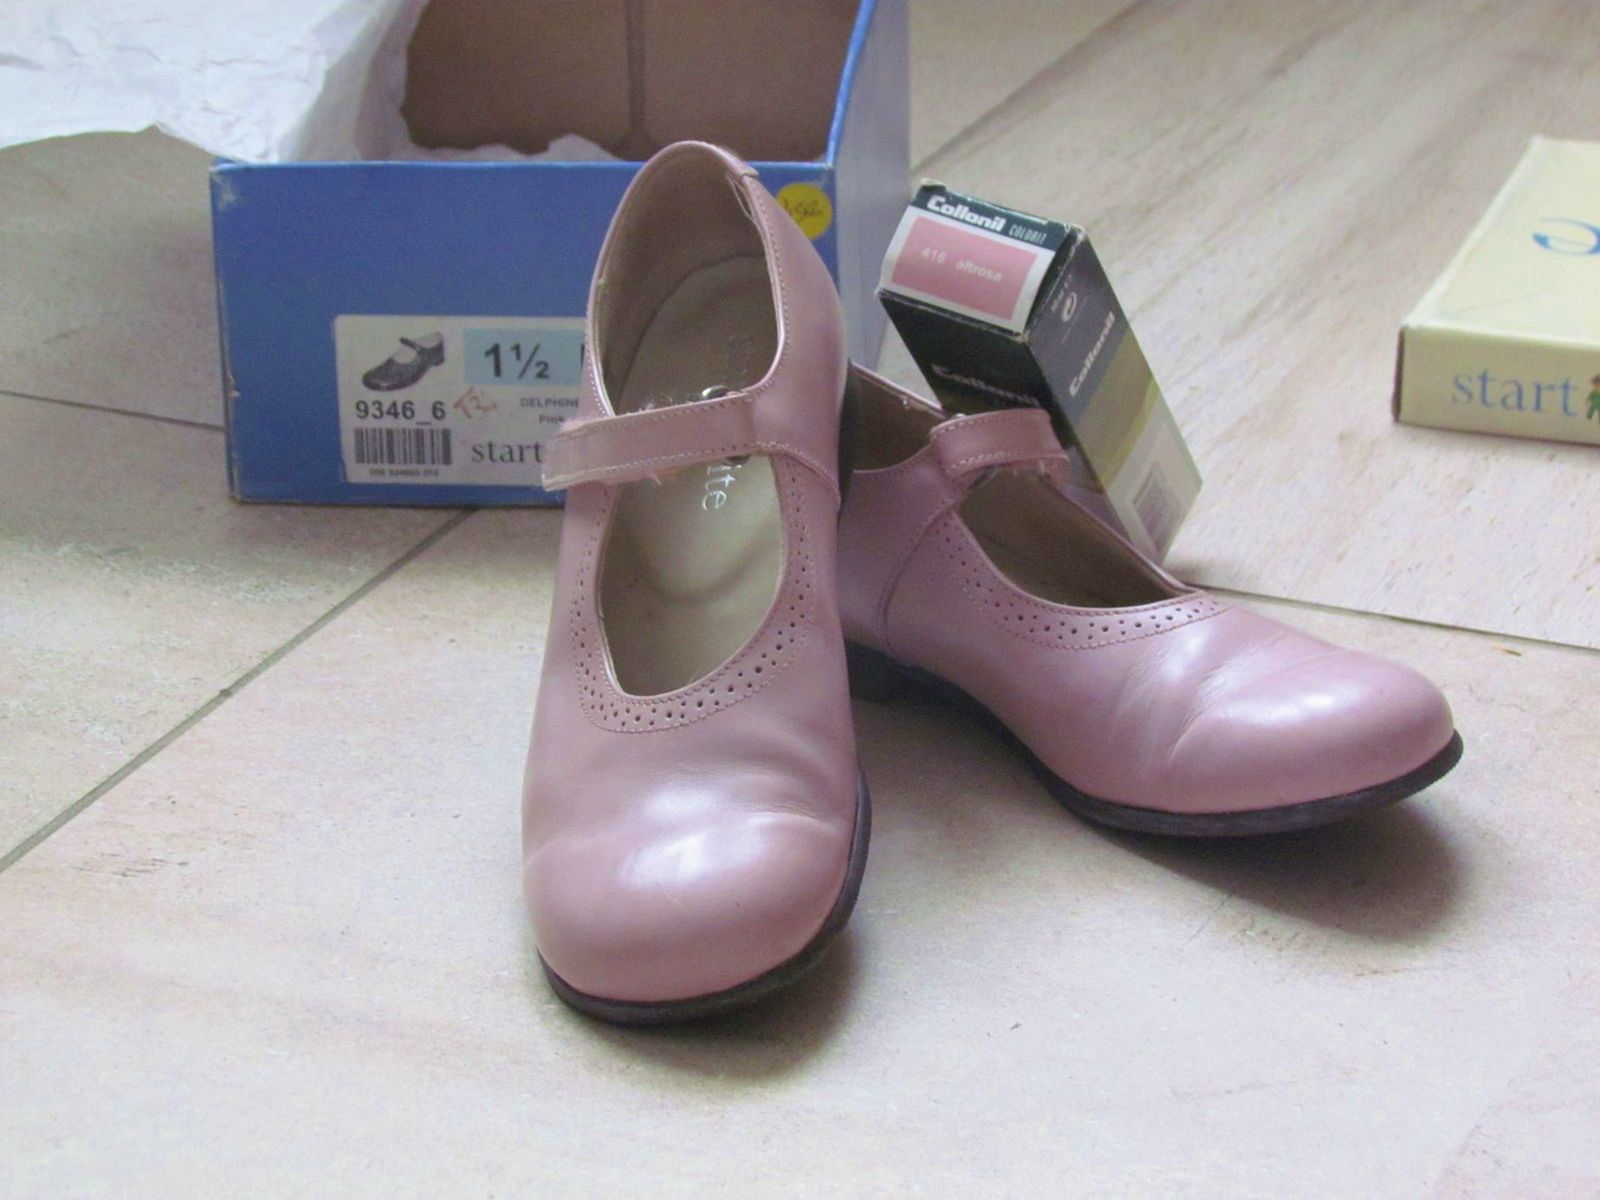 Chaussures Fille Start rite Delphine rose 34